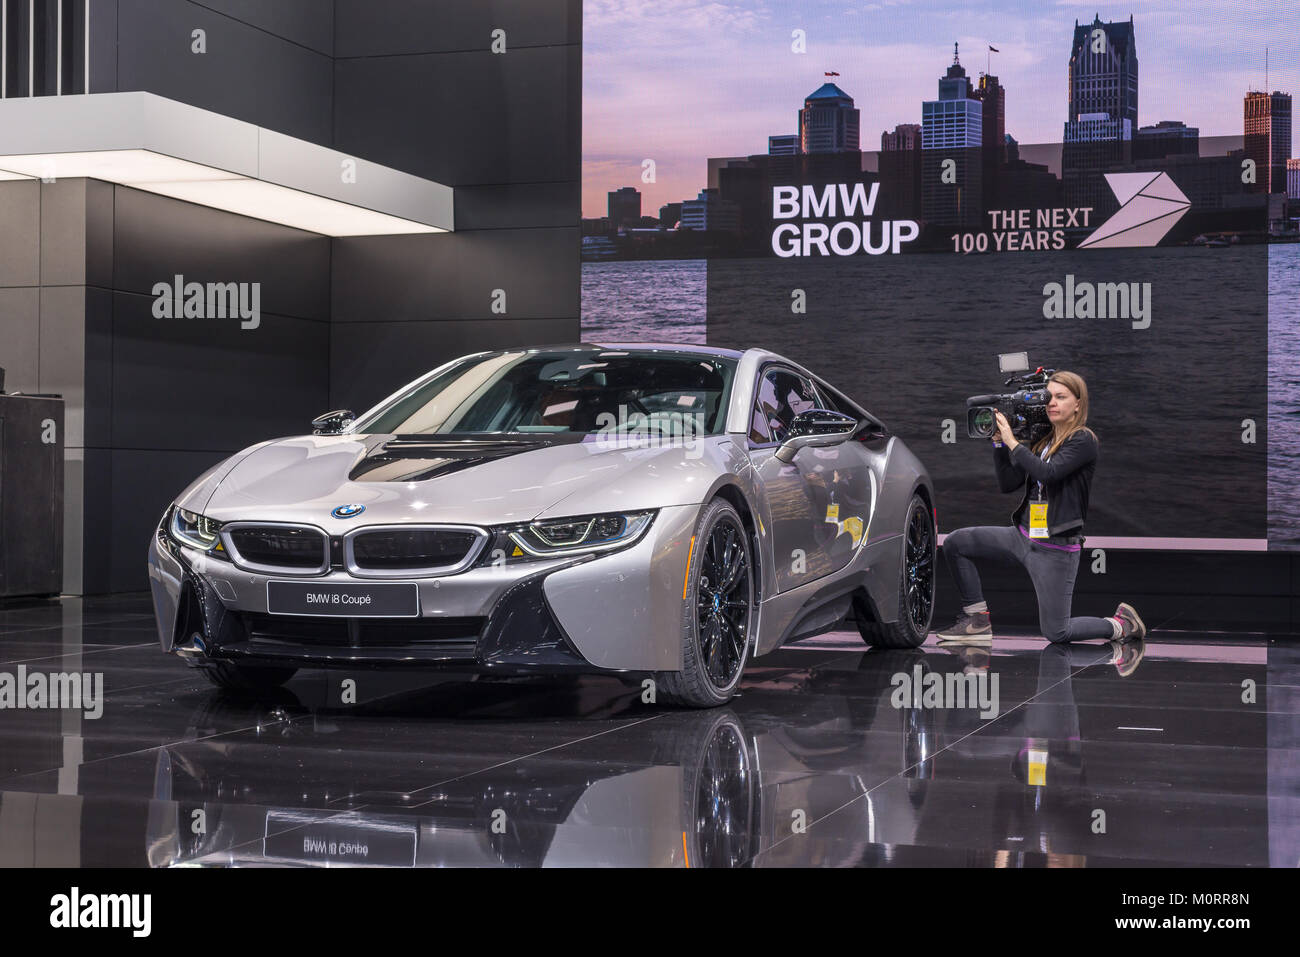 Detroit Mi Usa January 15 2018 A 2018 Bmw I8 Coupe Hybrid Car